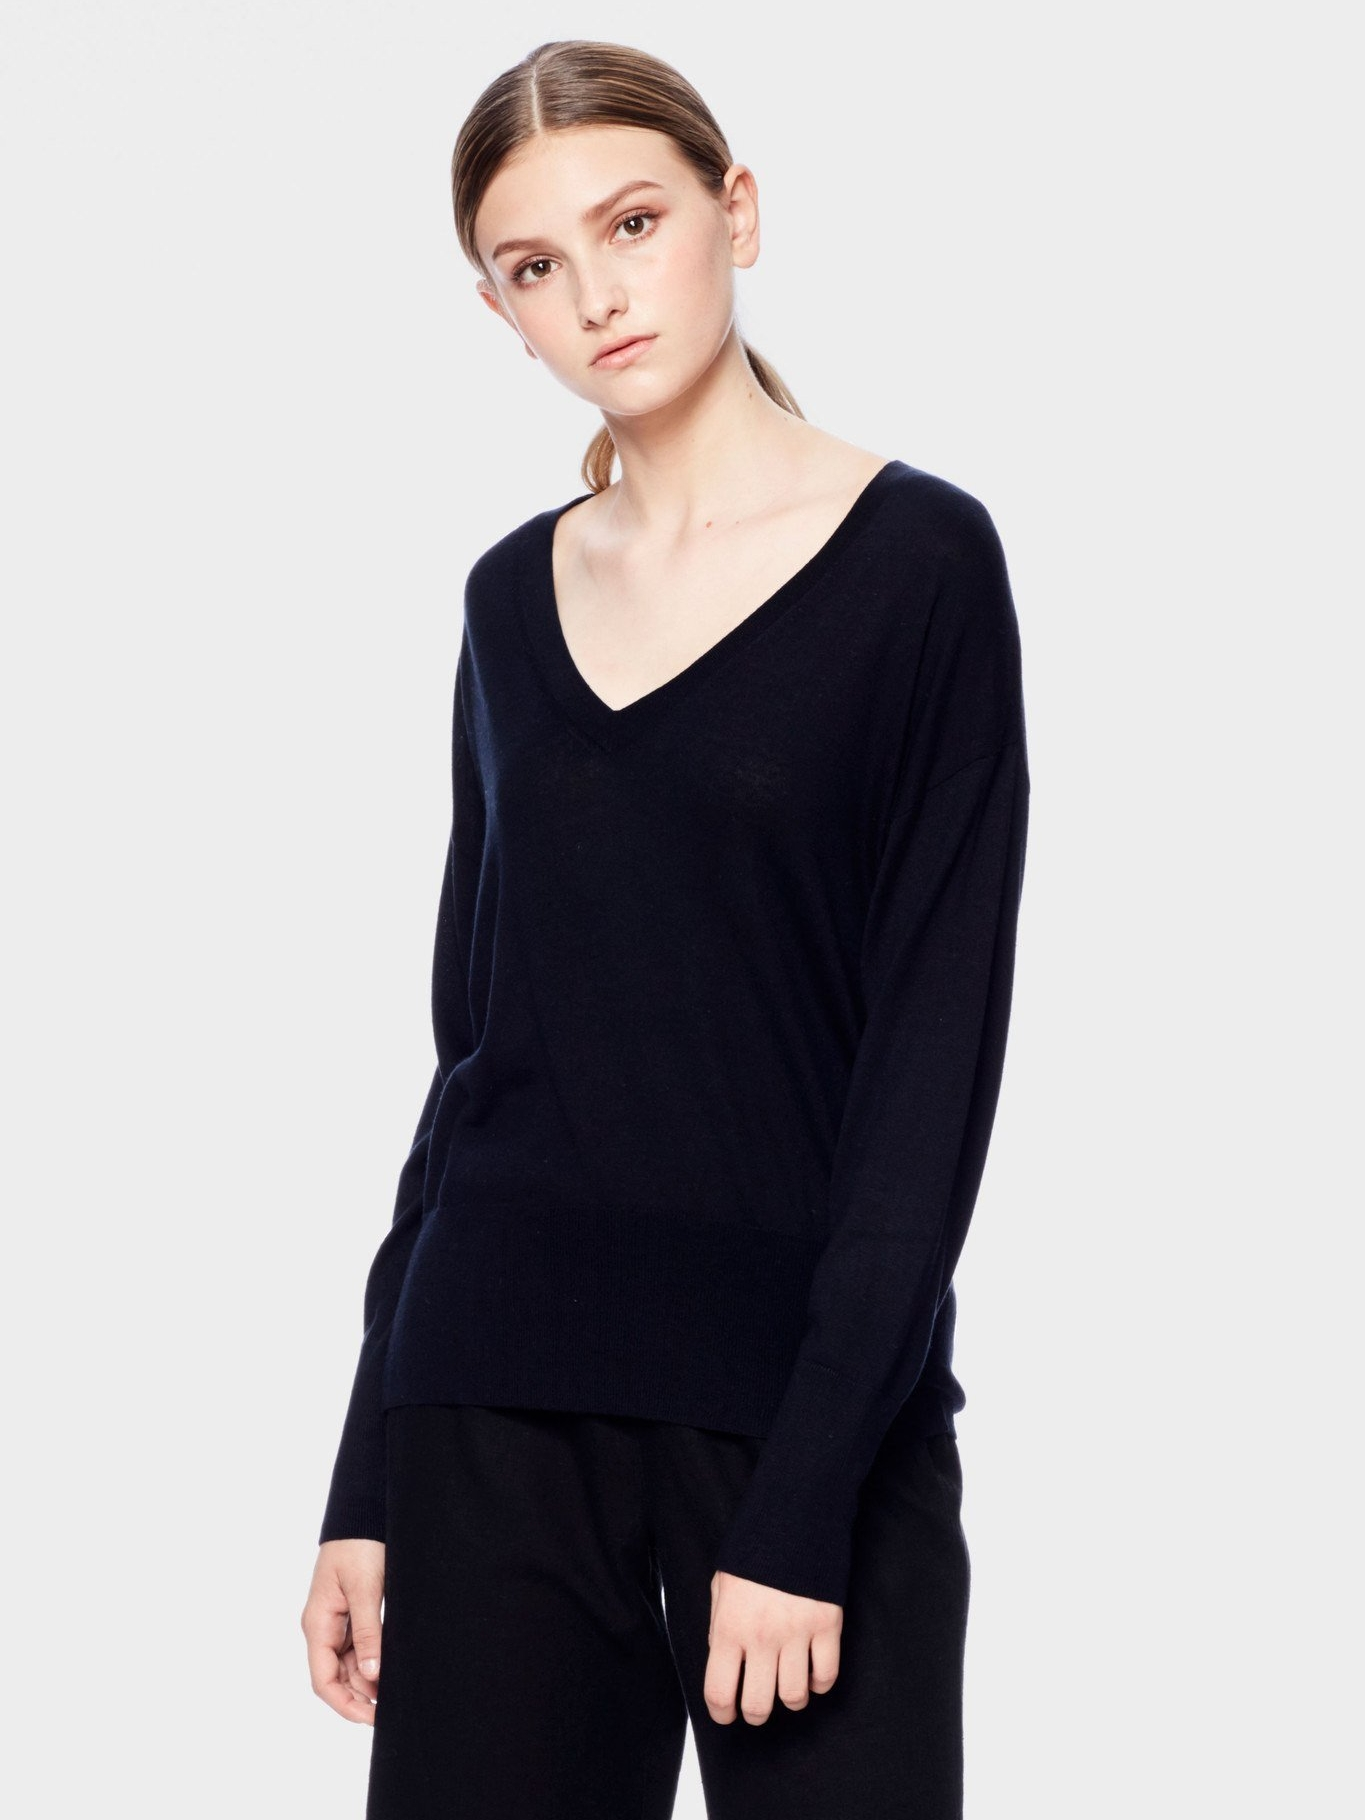 CASHMERE SWEATER | $105 - A luxury blend of Cashmere and Silk defines SiiZU's Inanna sweater as a must-have wardrobe basic.It features Deep V neckline, drop shoulder line, and high-low hem. Sustainably made and ethically manufactured, this sweater is sure to please!